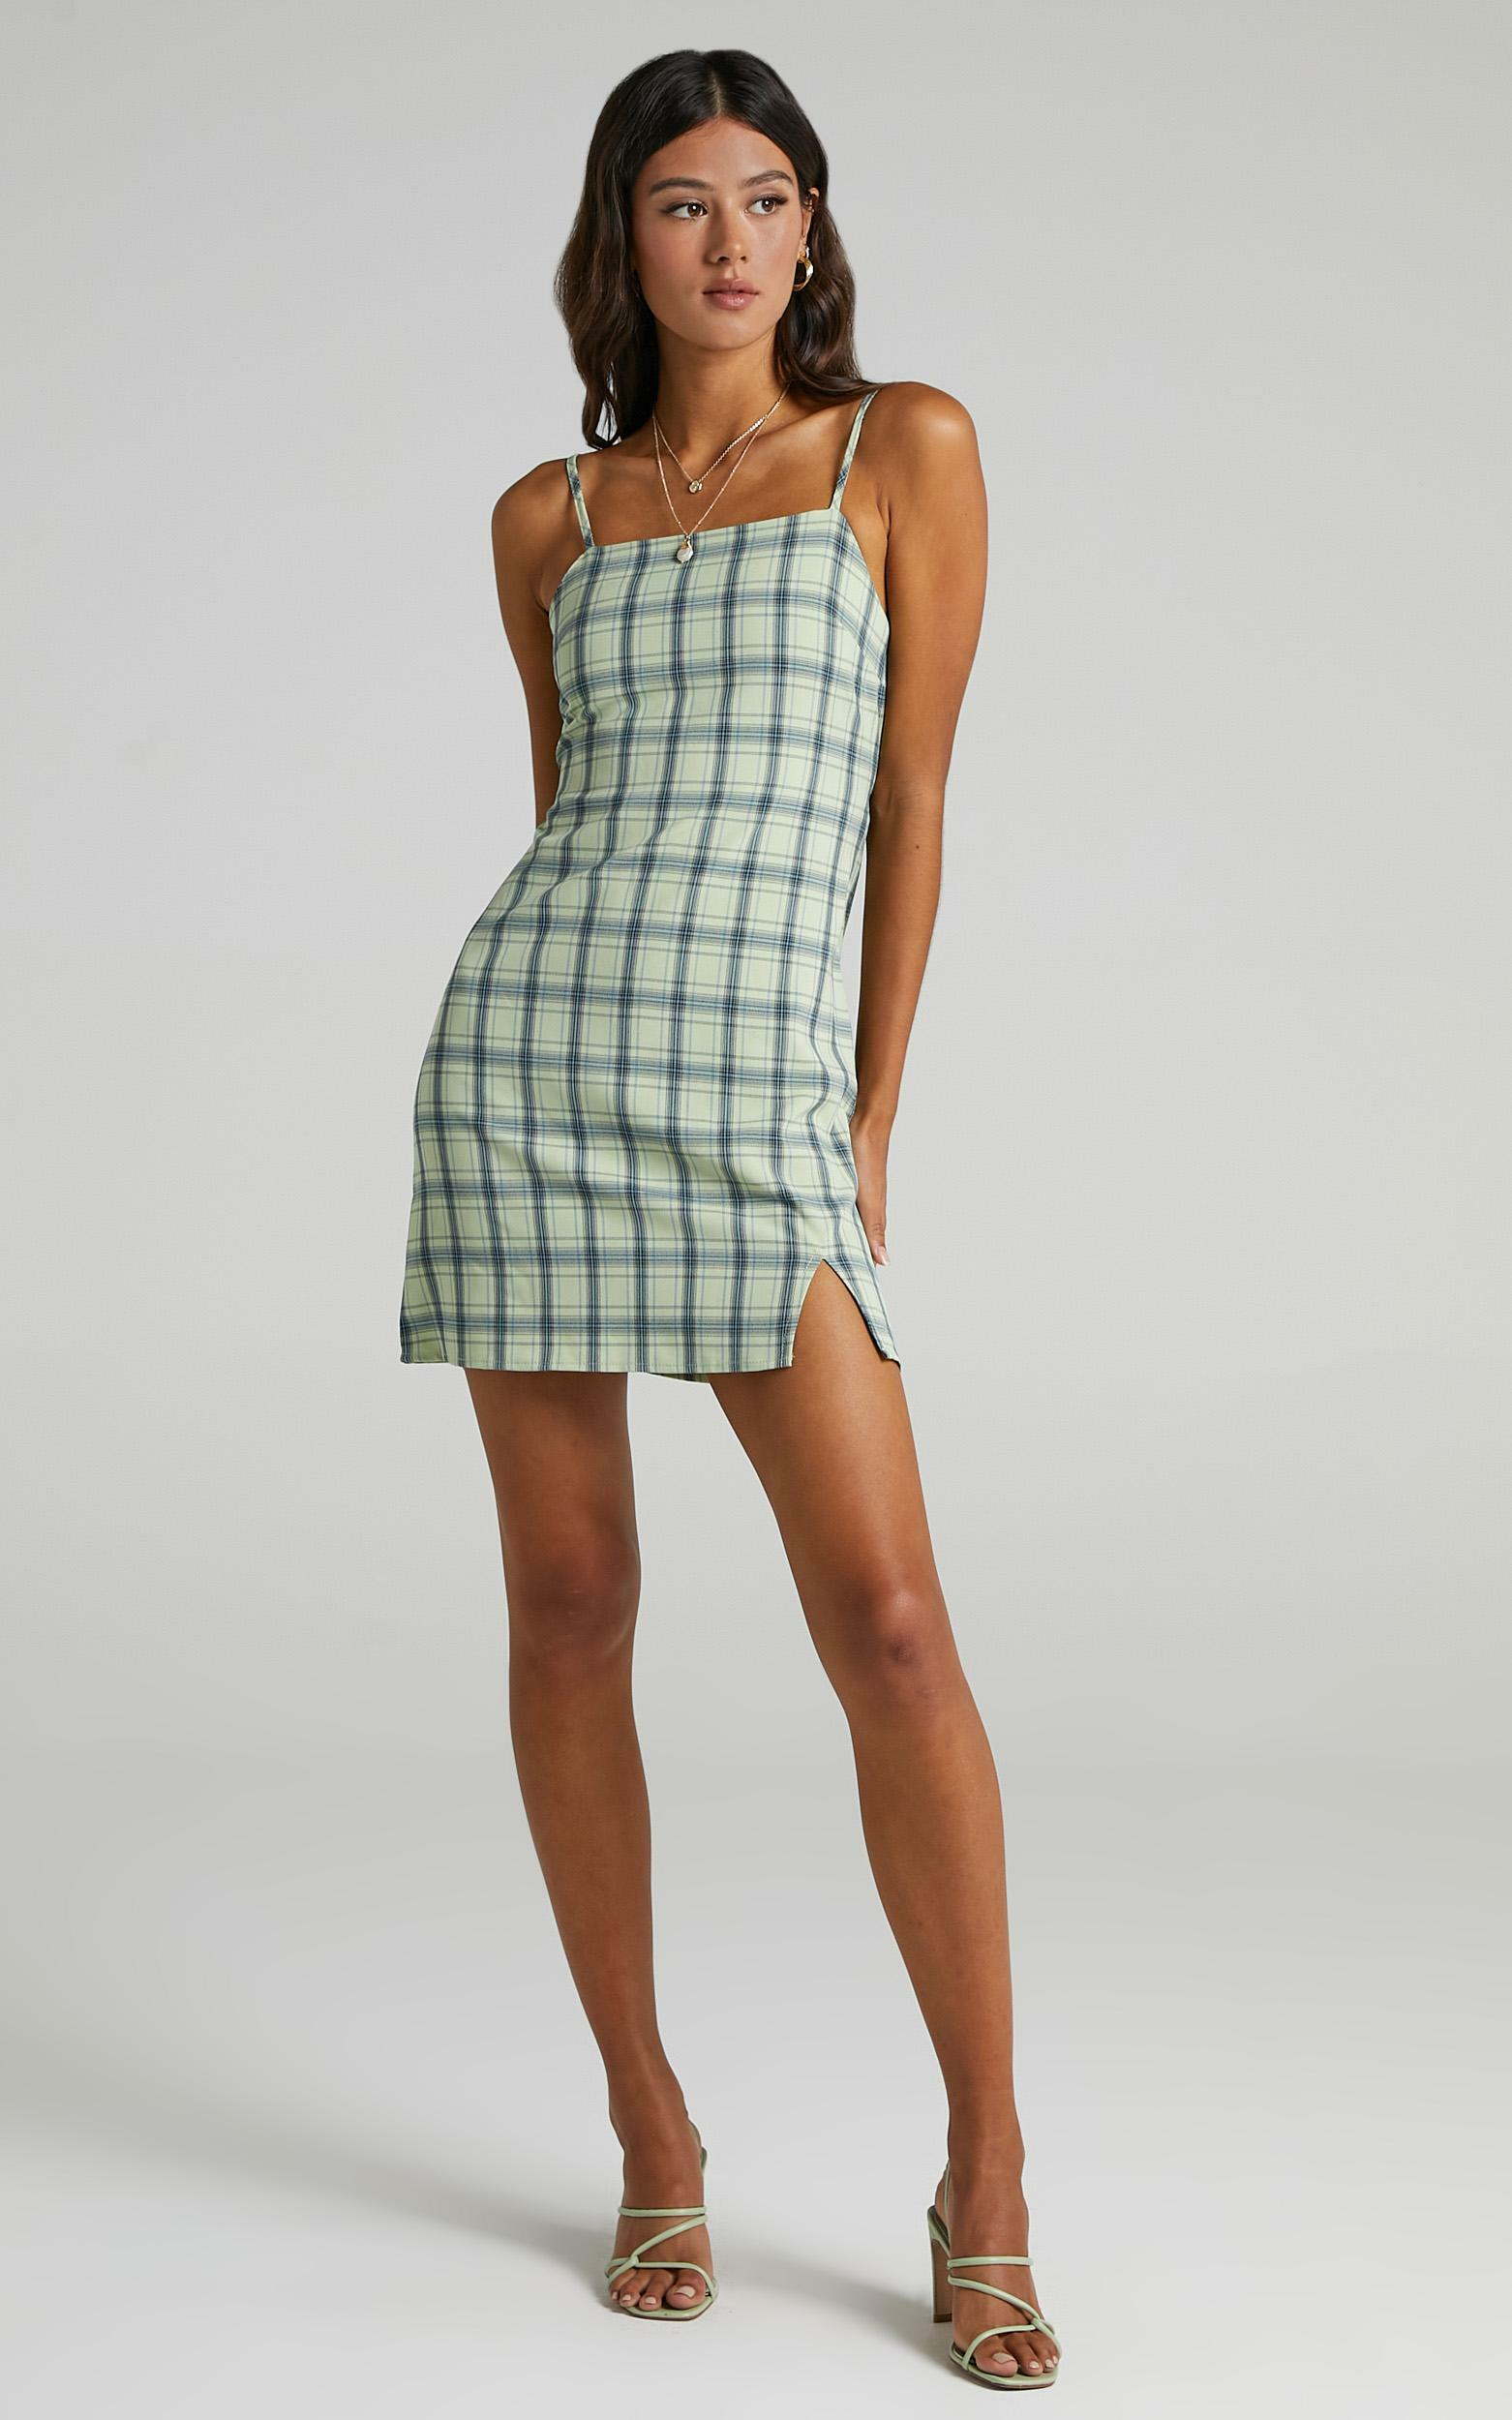 Maryssa Dress in Green Check - 08, GRN1, hi-res image number null